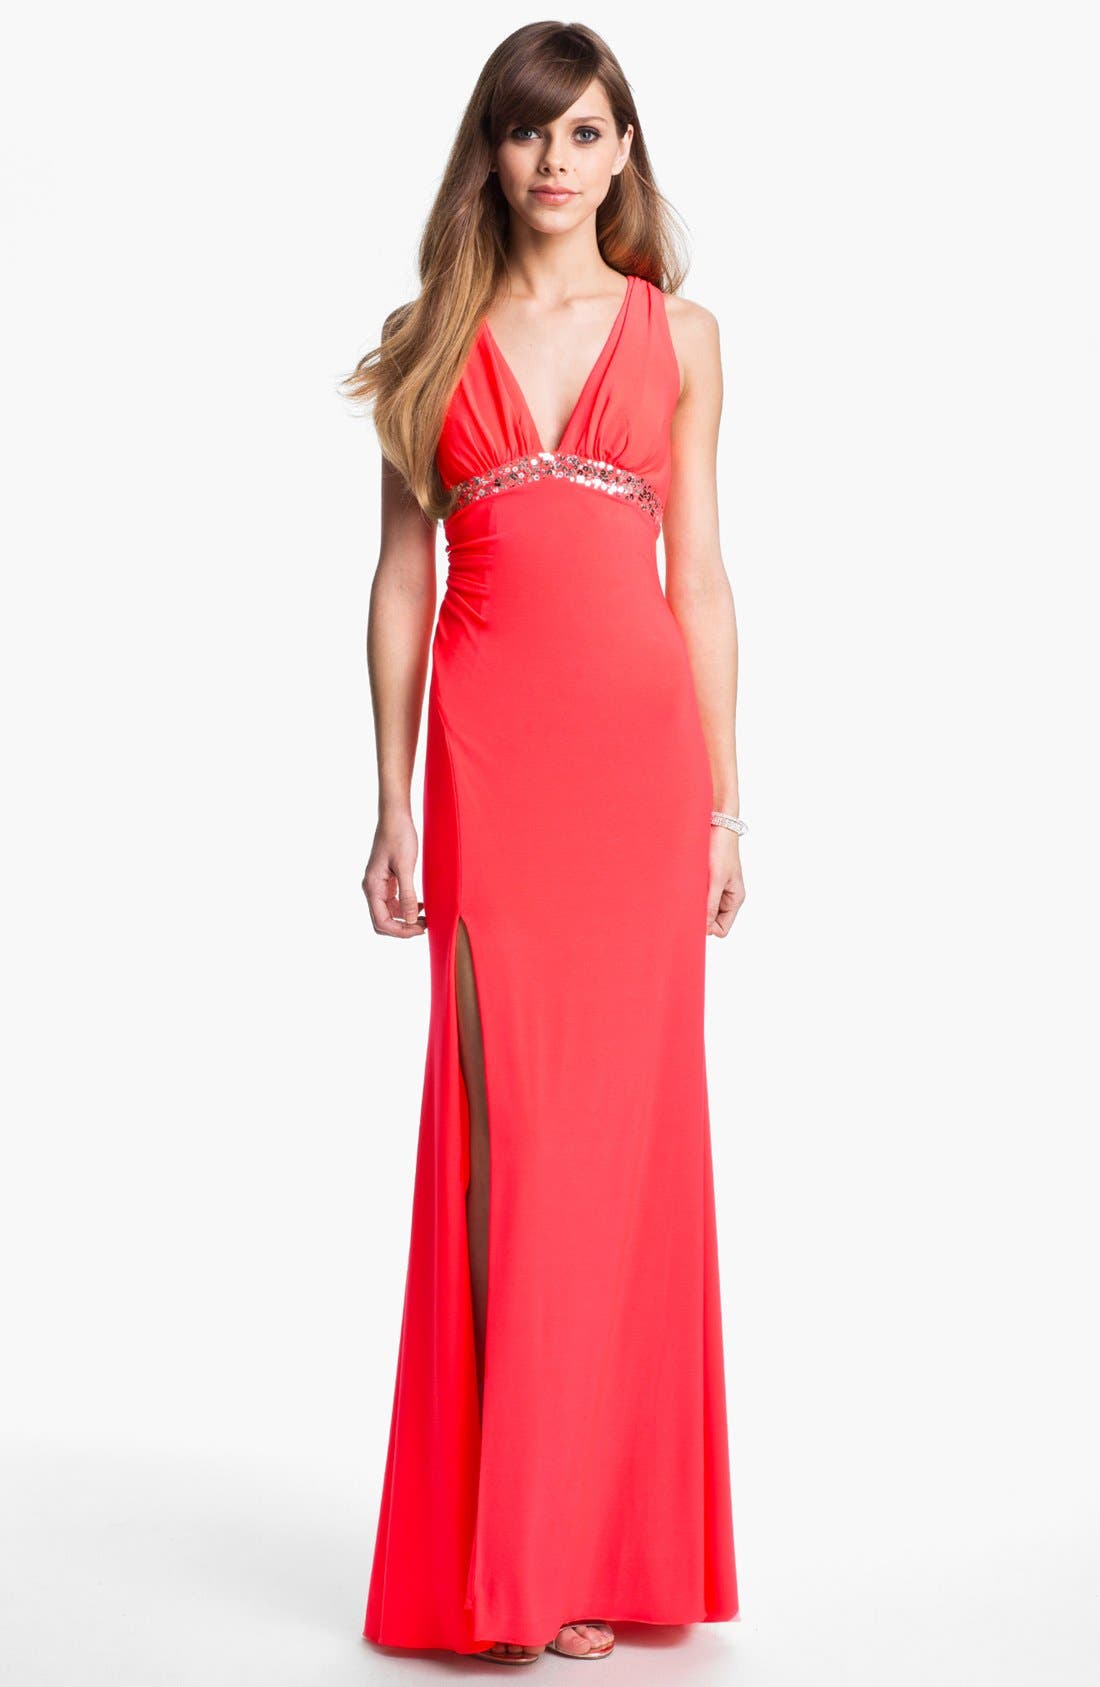 Main Image - Test 1.26.16 - Hailey Logan Embellished Cutout Gown (Juniors) (Online Only)test. Test PICS2.0